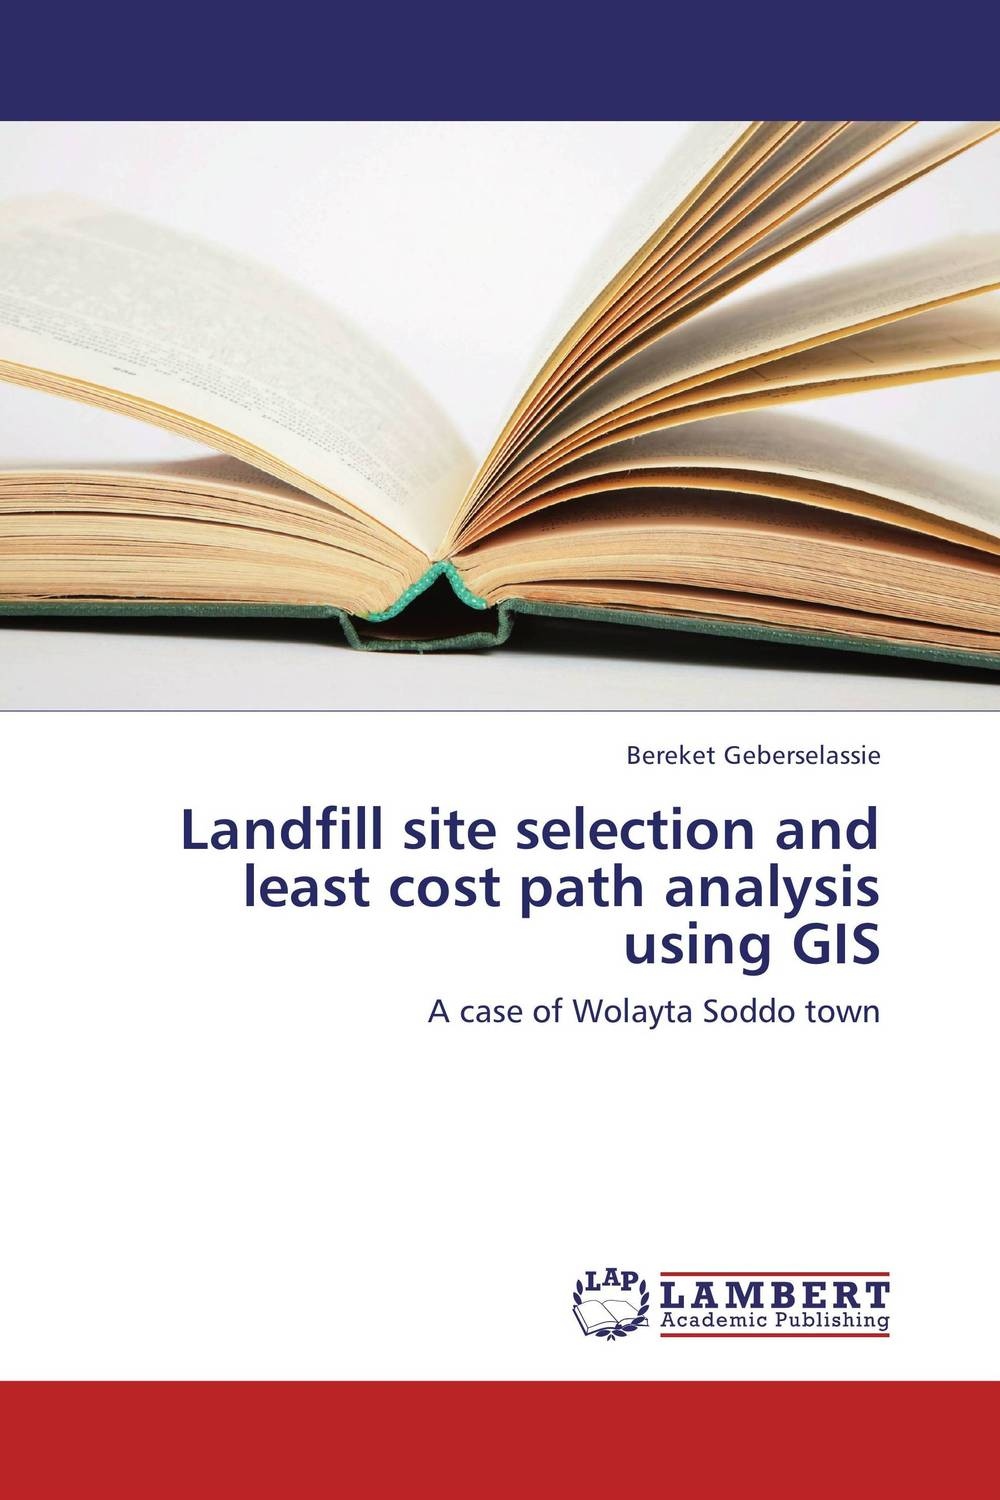 Landfill site selection and least cost path analysis using GIS